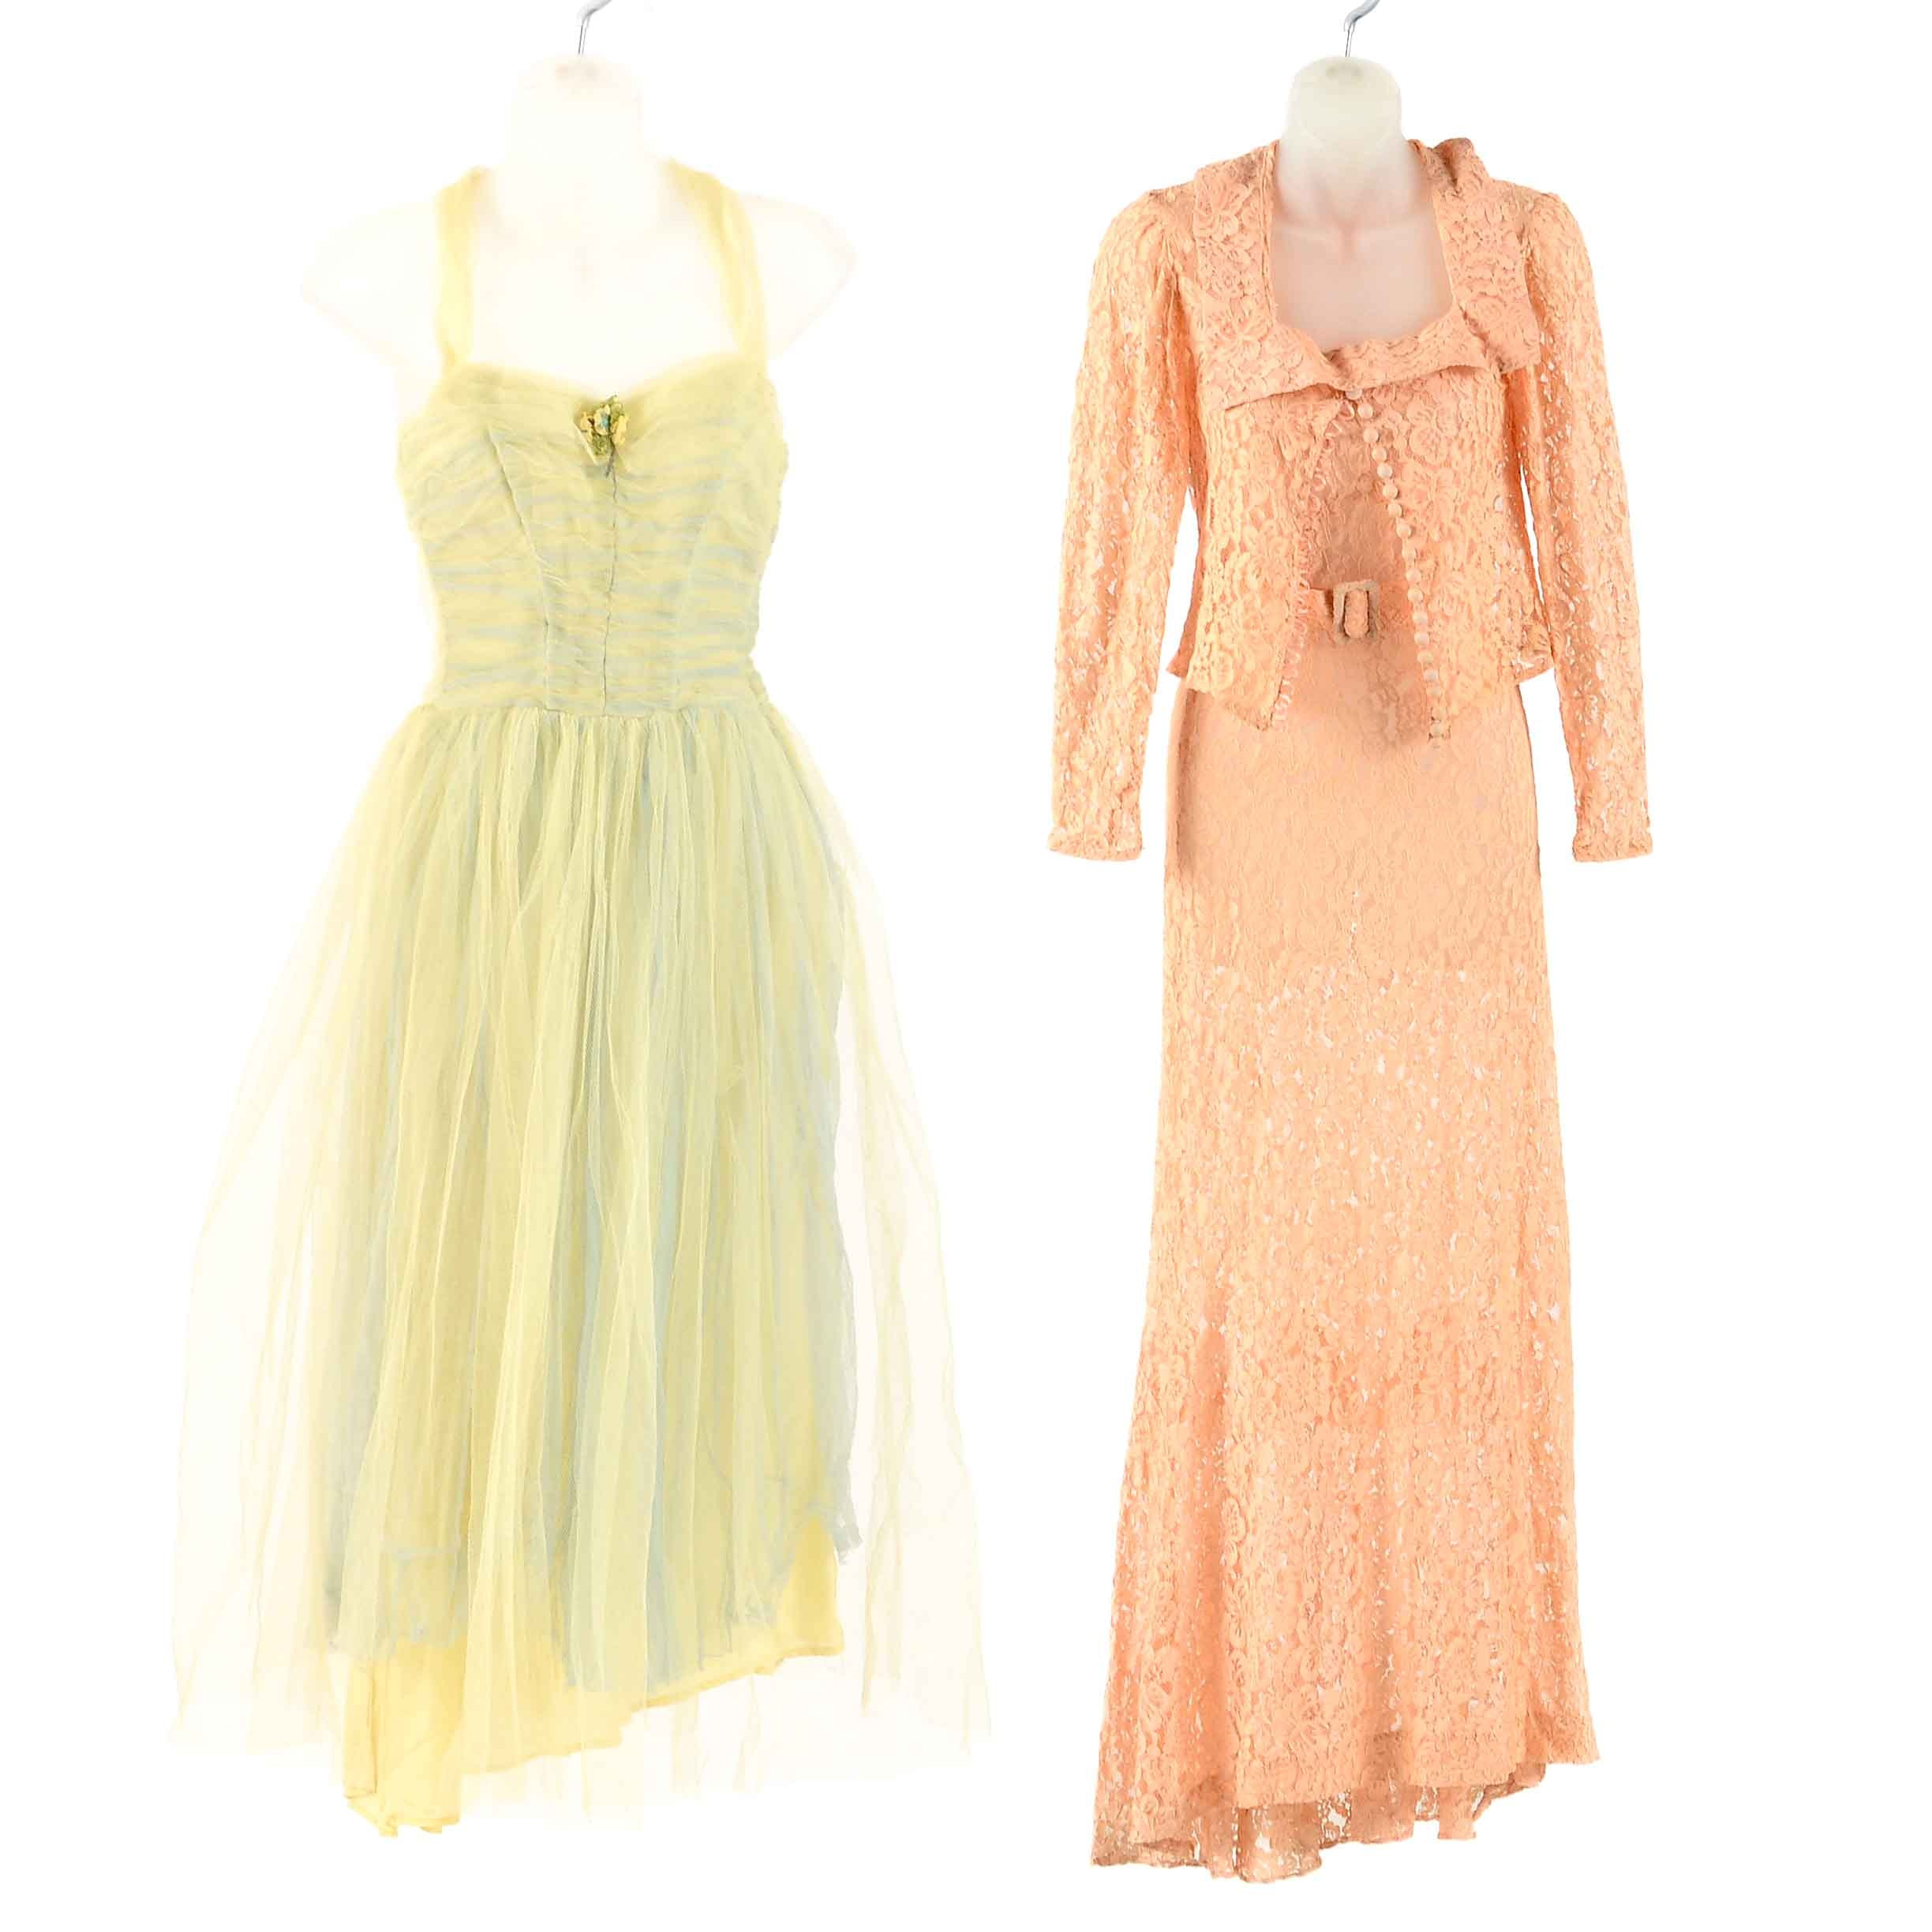 1950's Formal Lace Dresses